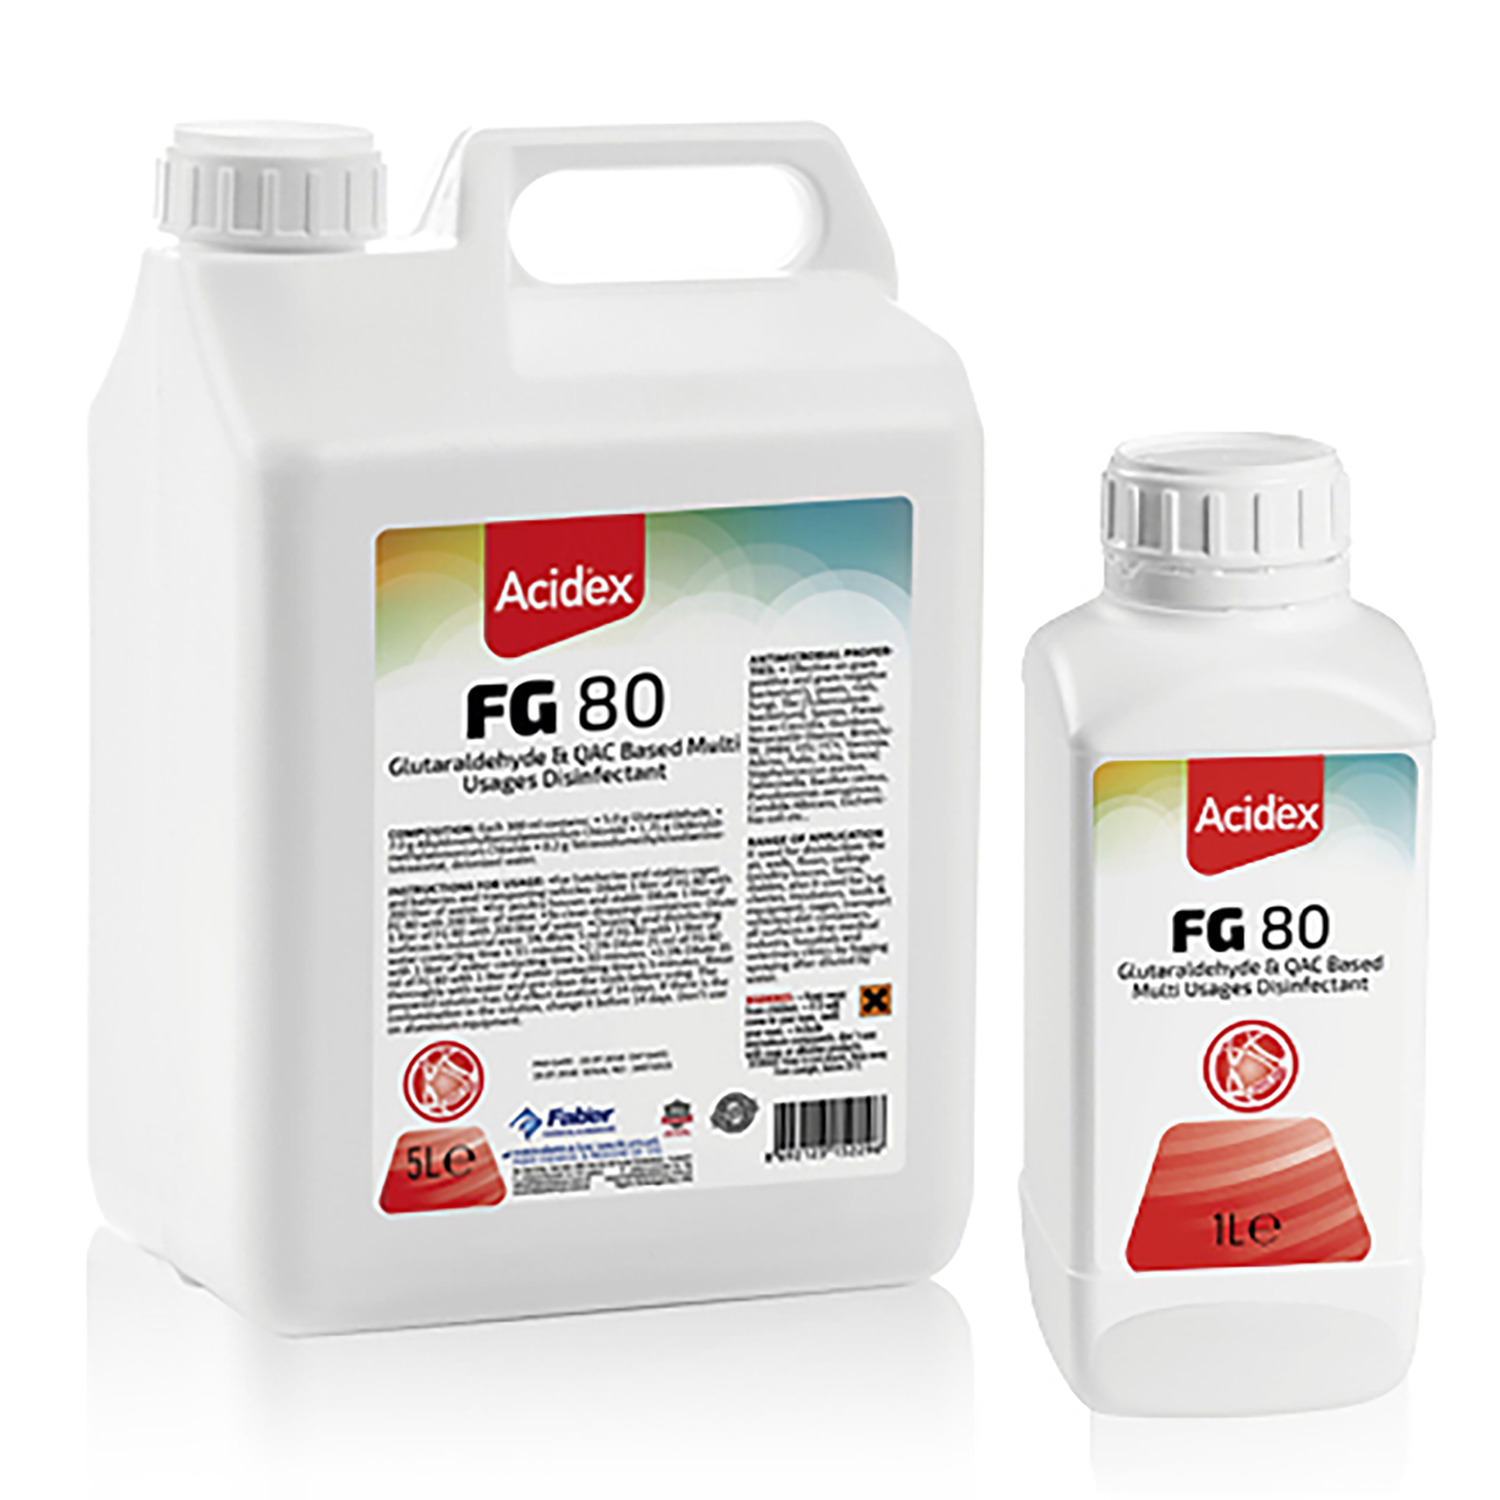 Acidex FG 80